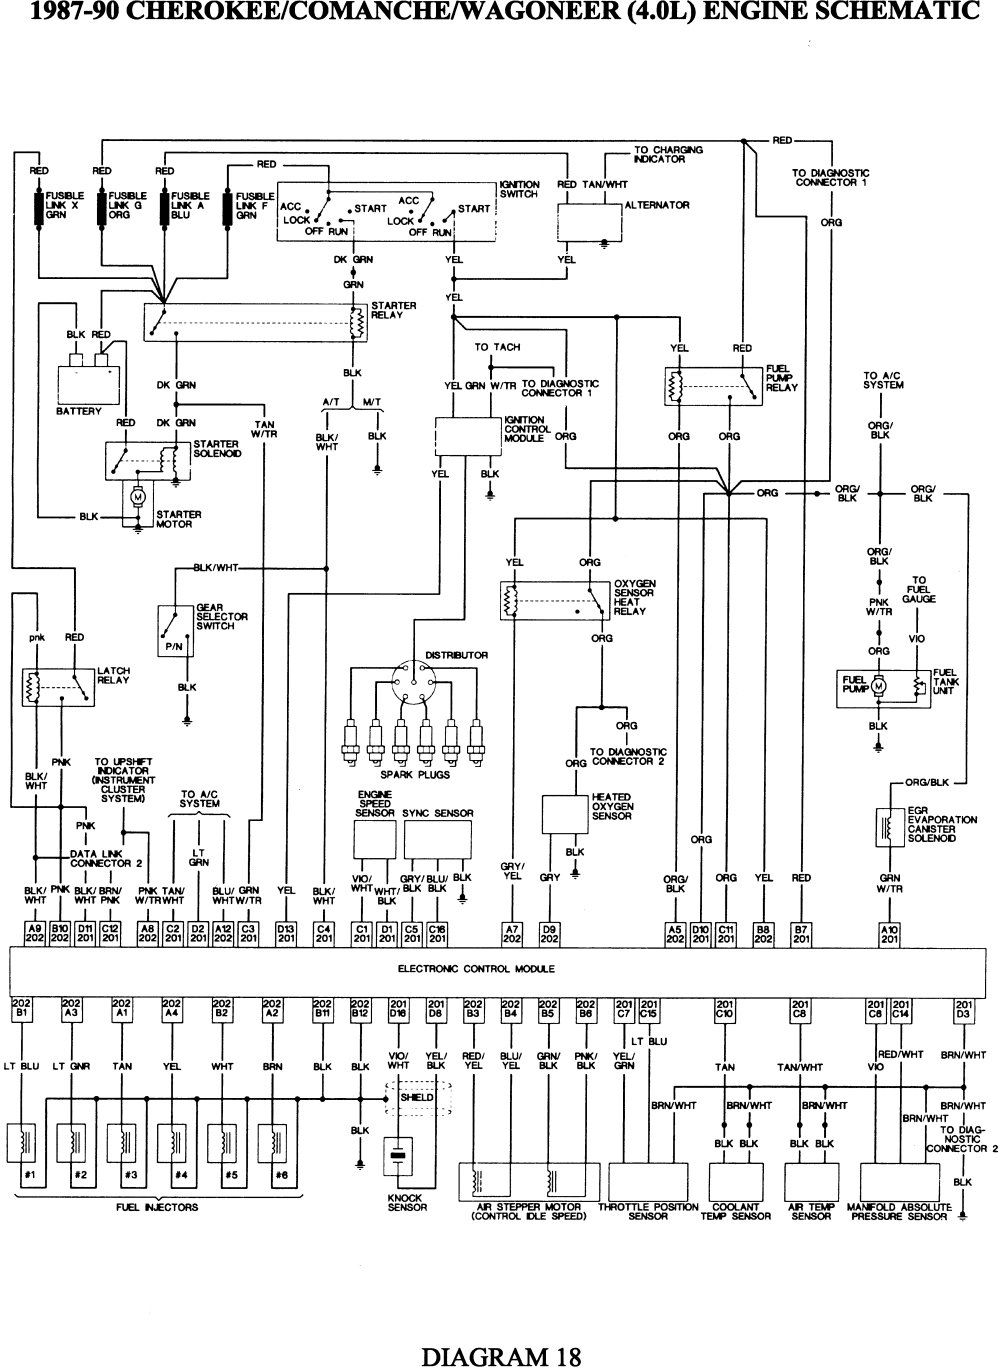 medium resolution of 1997 jeep wrangler alternator diagram on jeep wrangler electrical mix 1997 jeep wrangler electrical diagram wiring